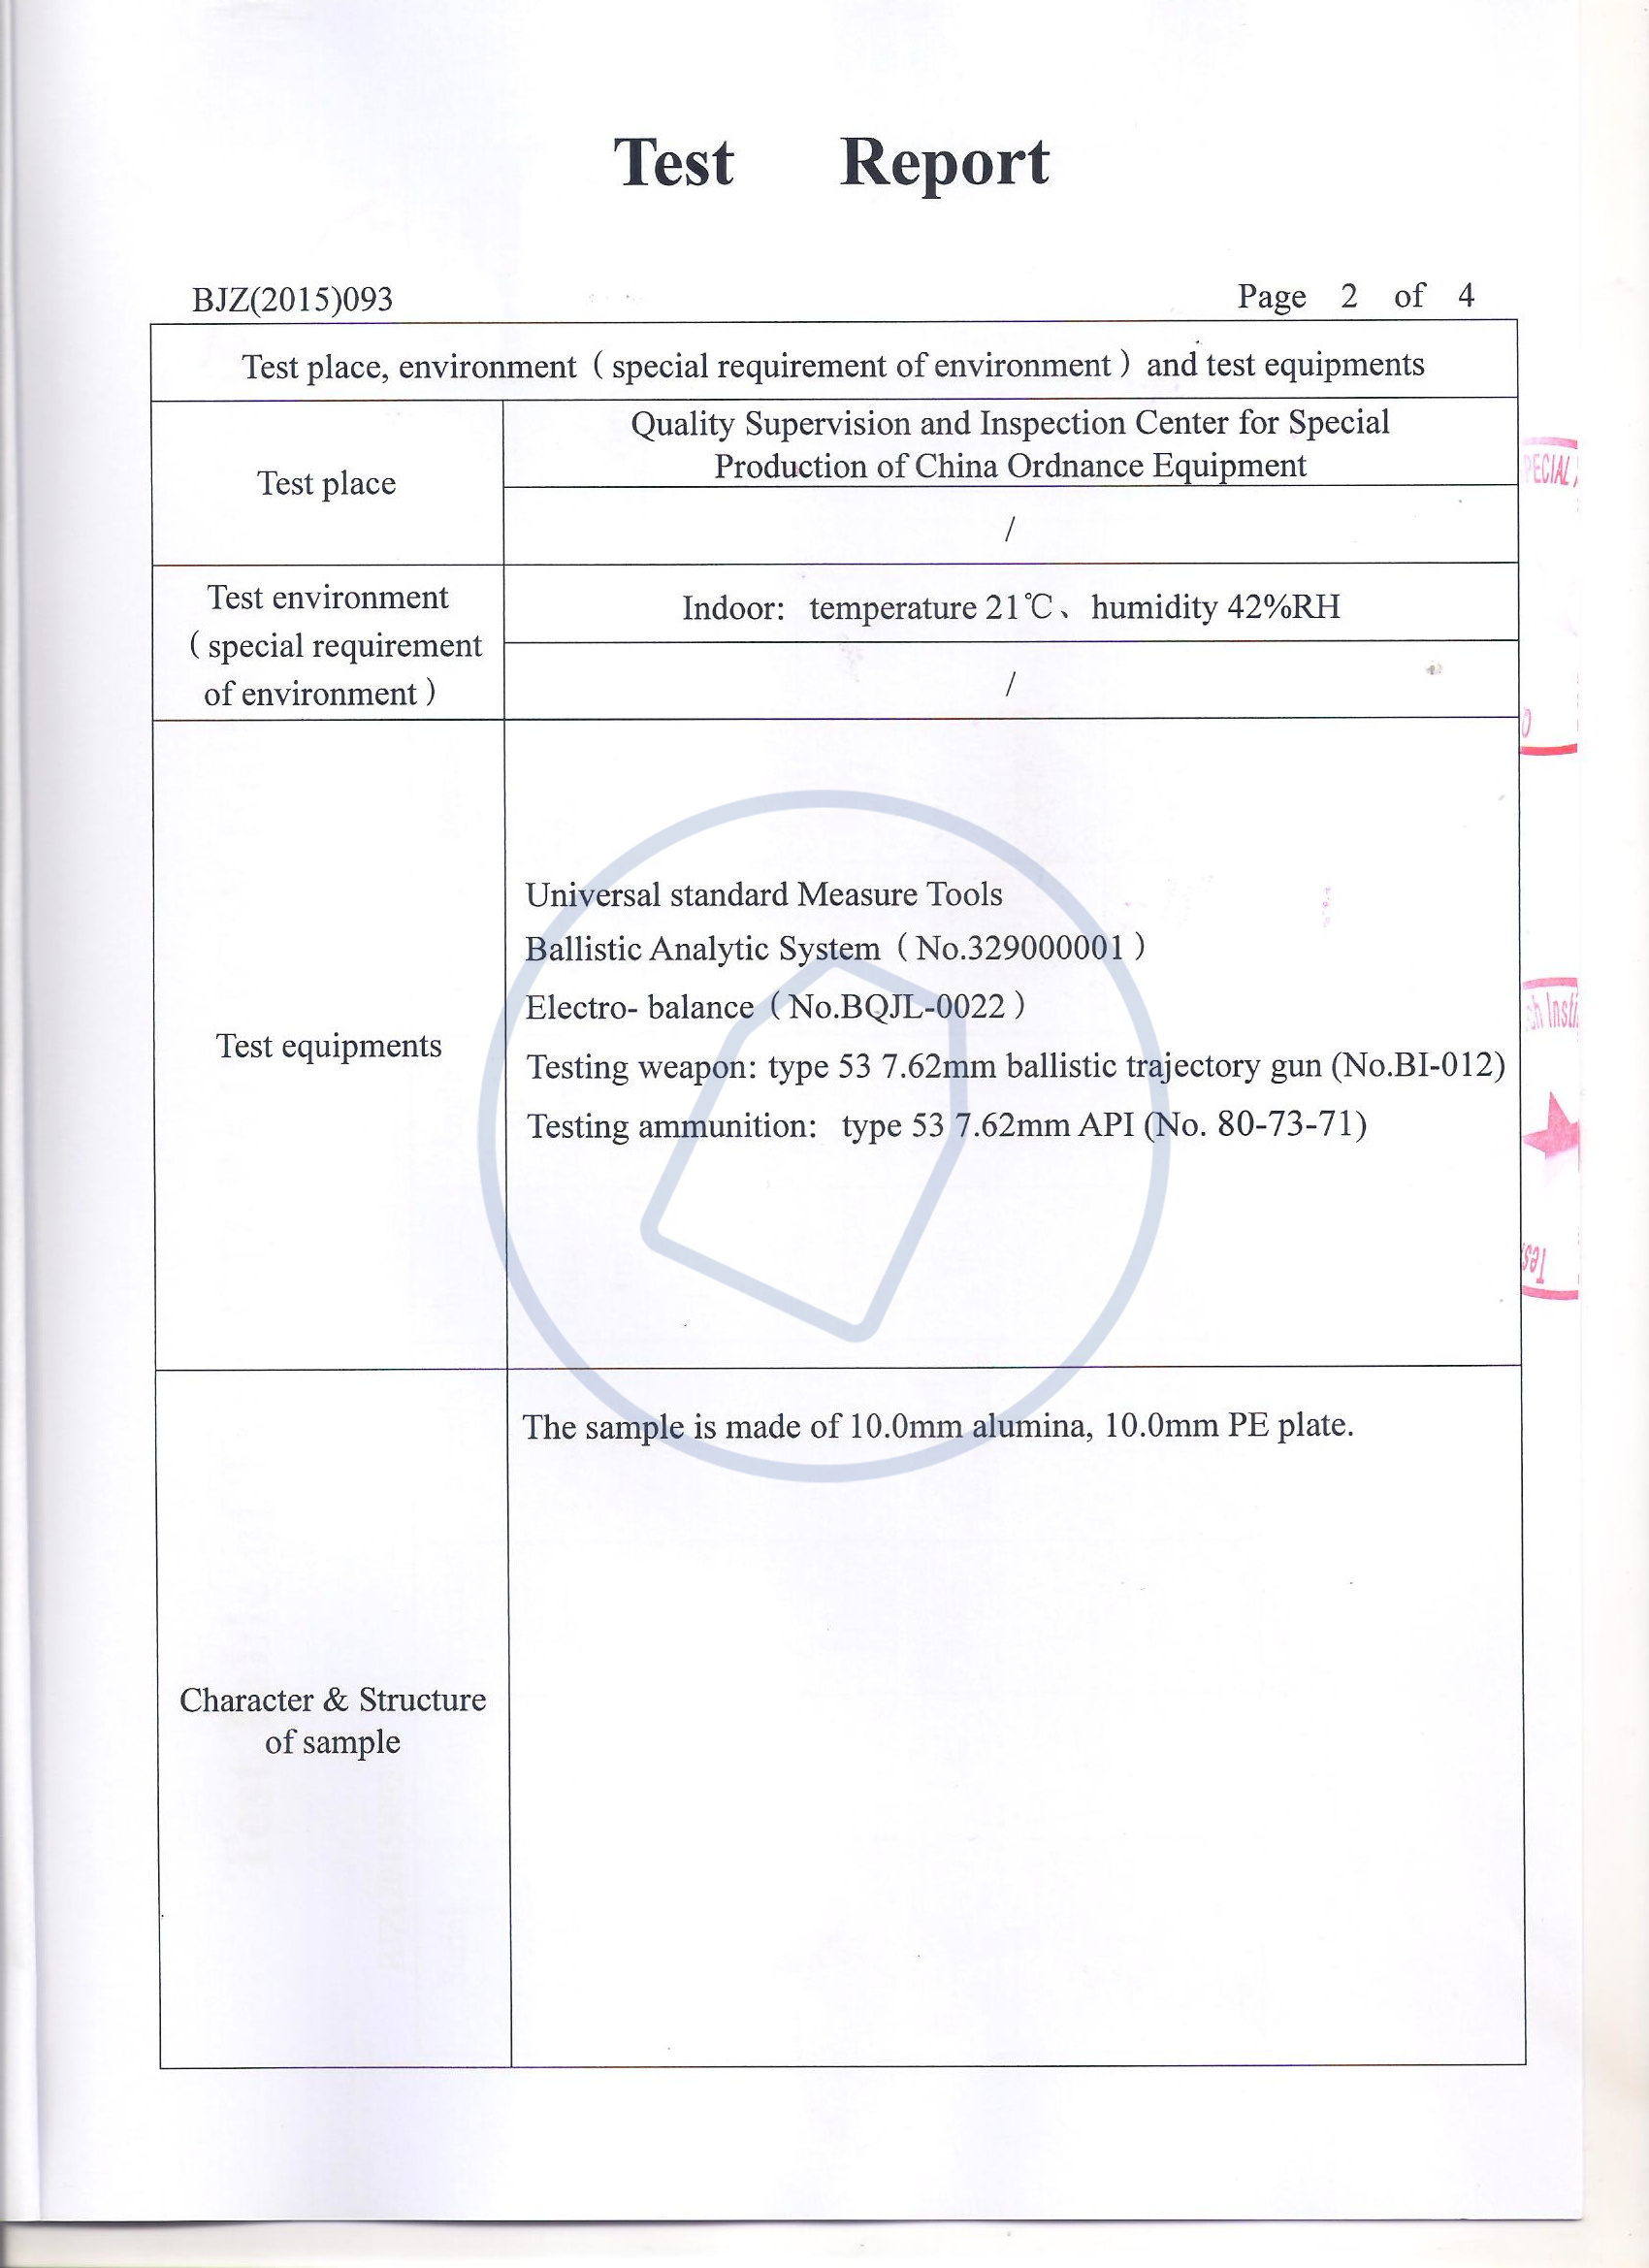 gd paiv icw test report of nij 010106 level iv (5)